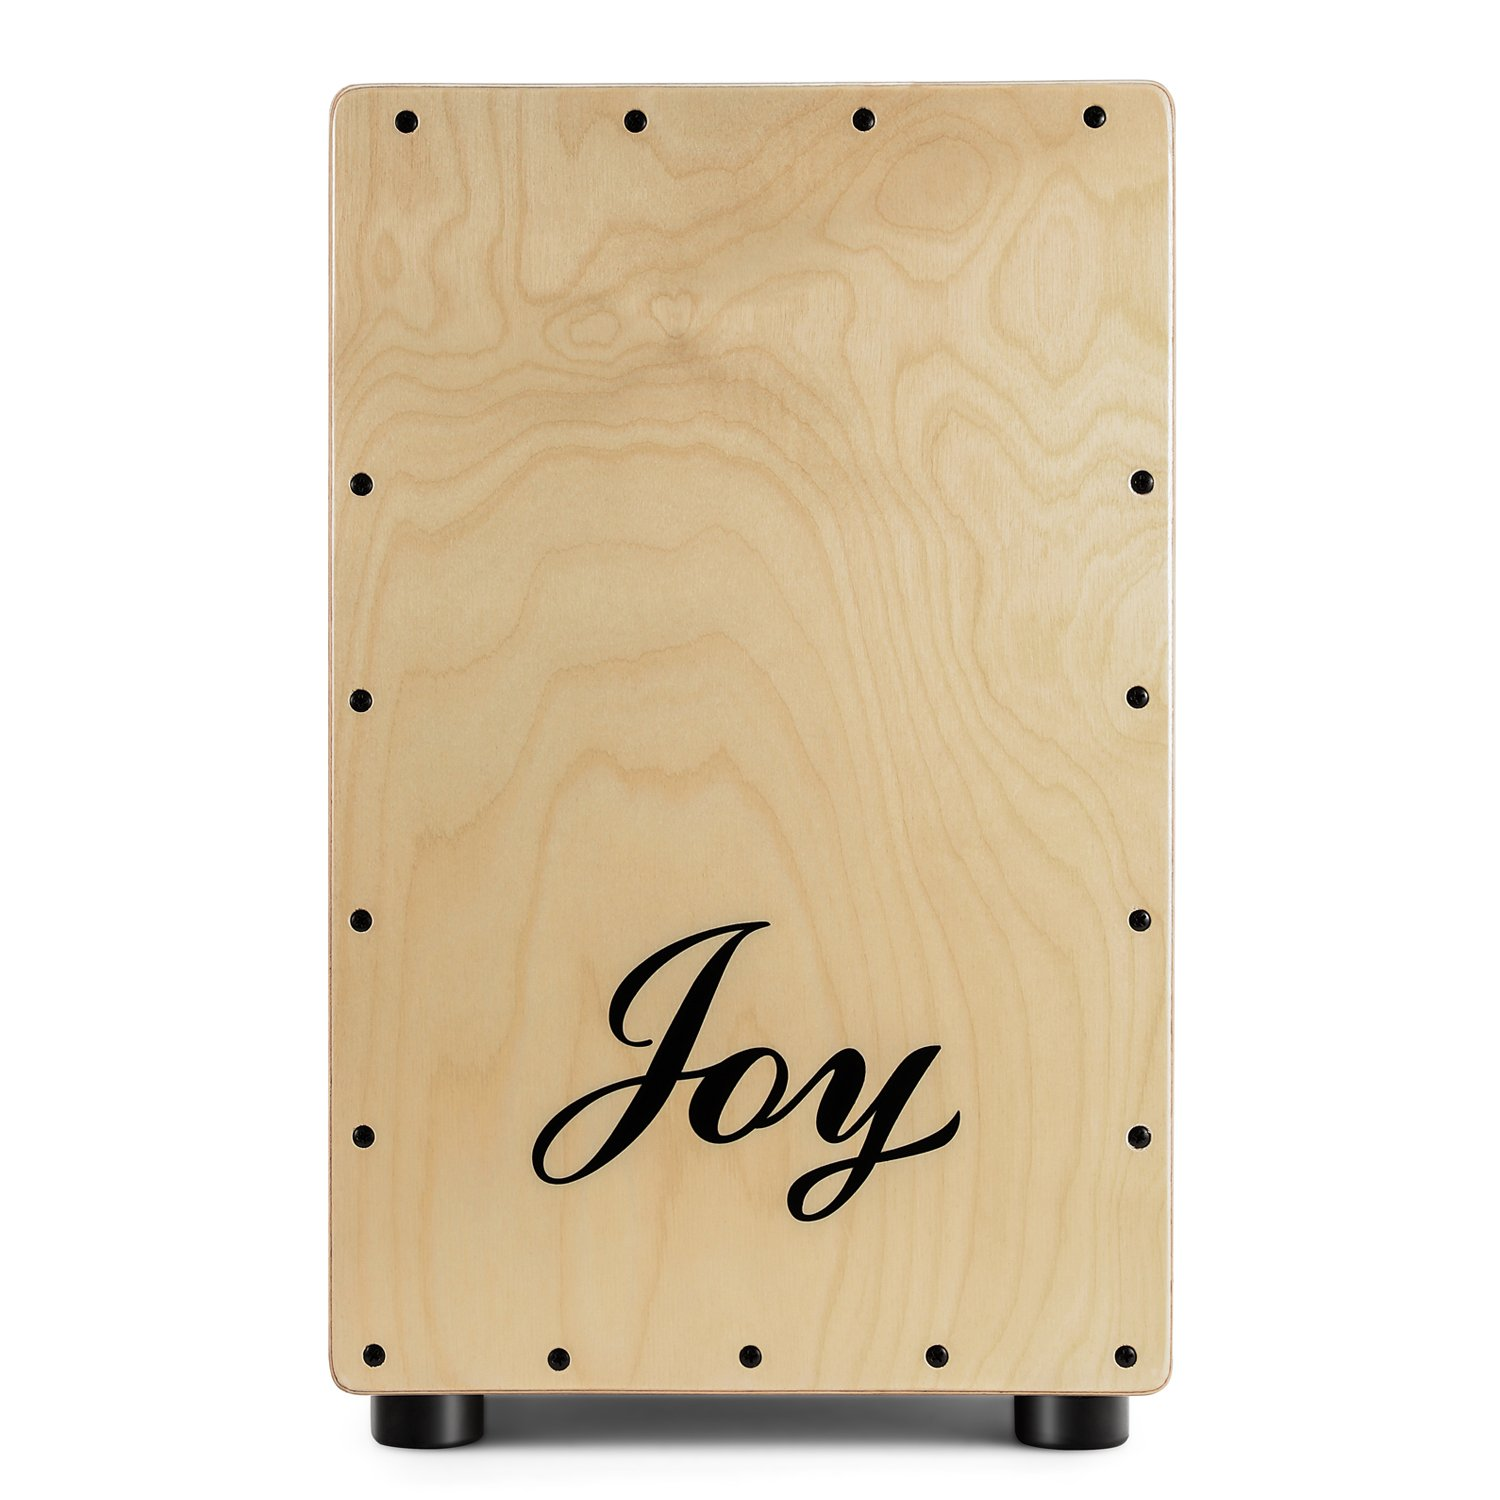 JOY 104 Standard Series Cajon with ASH Wood Tapping & Birch Body, Large Rubber Feet for Protection, Matte Finish CHINA JOY KEYBOARDS CO. LTD